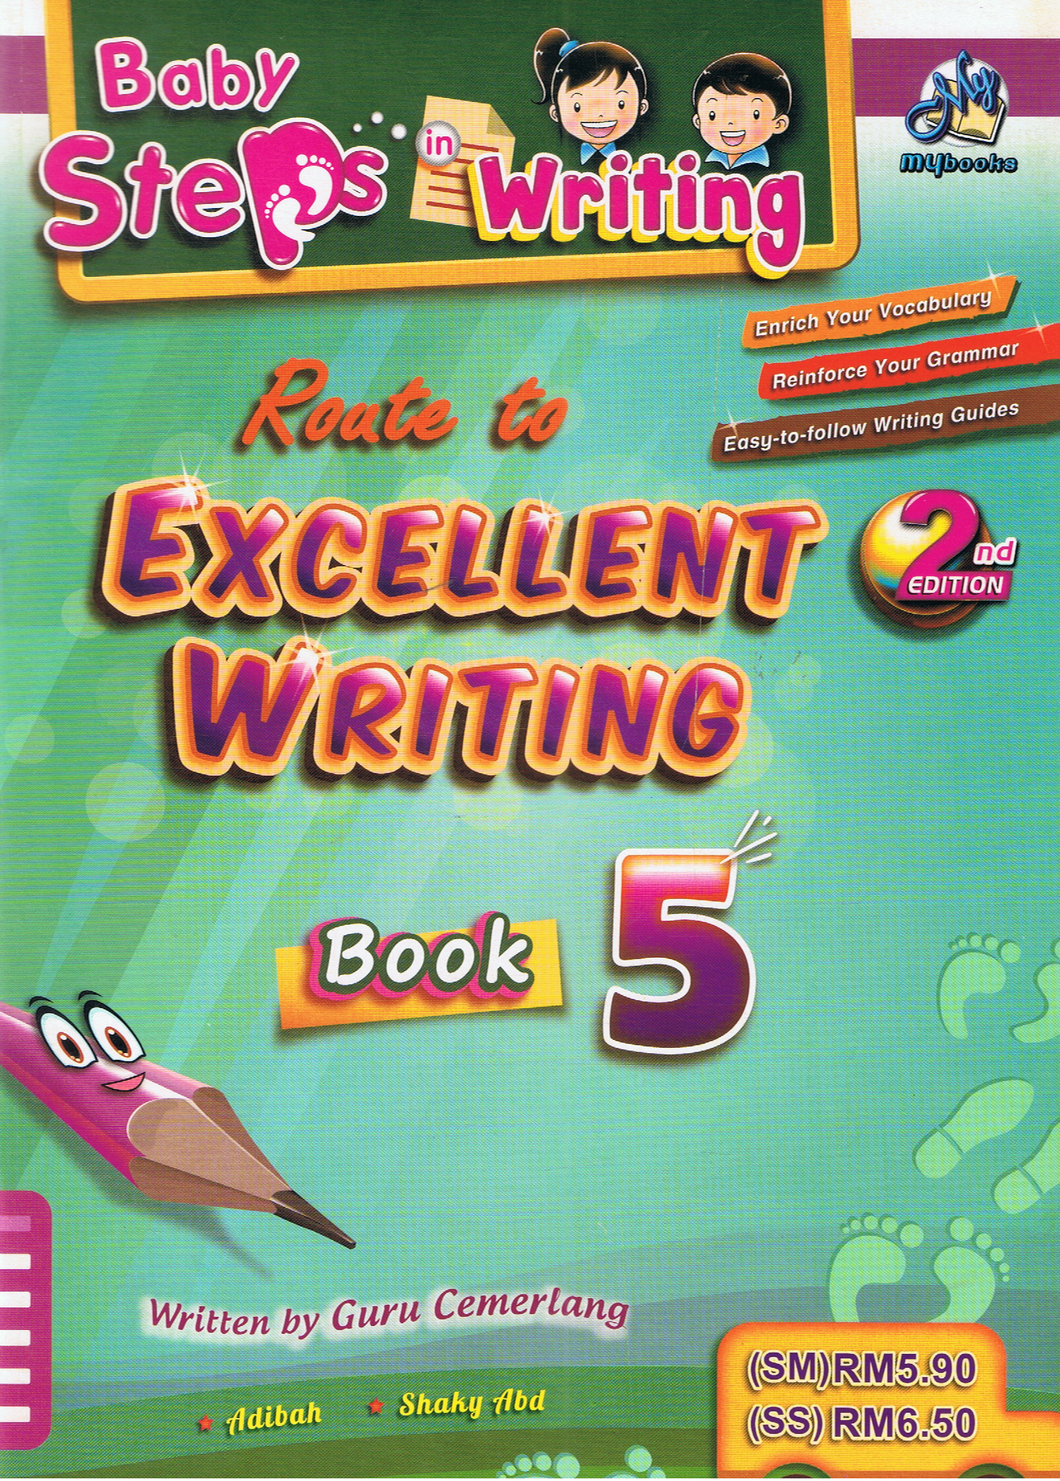 Baby Steps In Writing: Roate To Excellent Writing Book 5